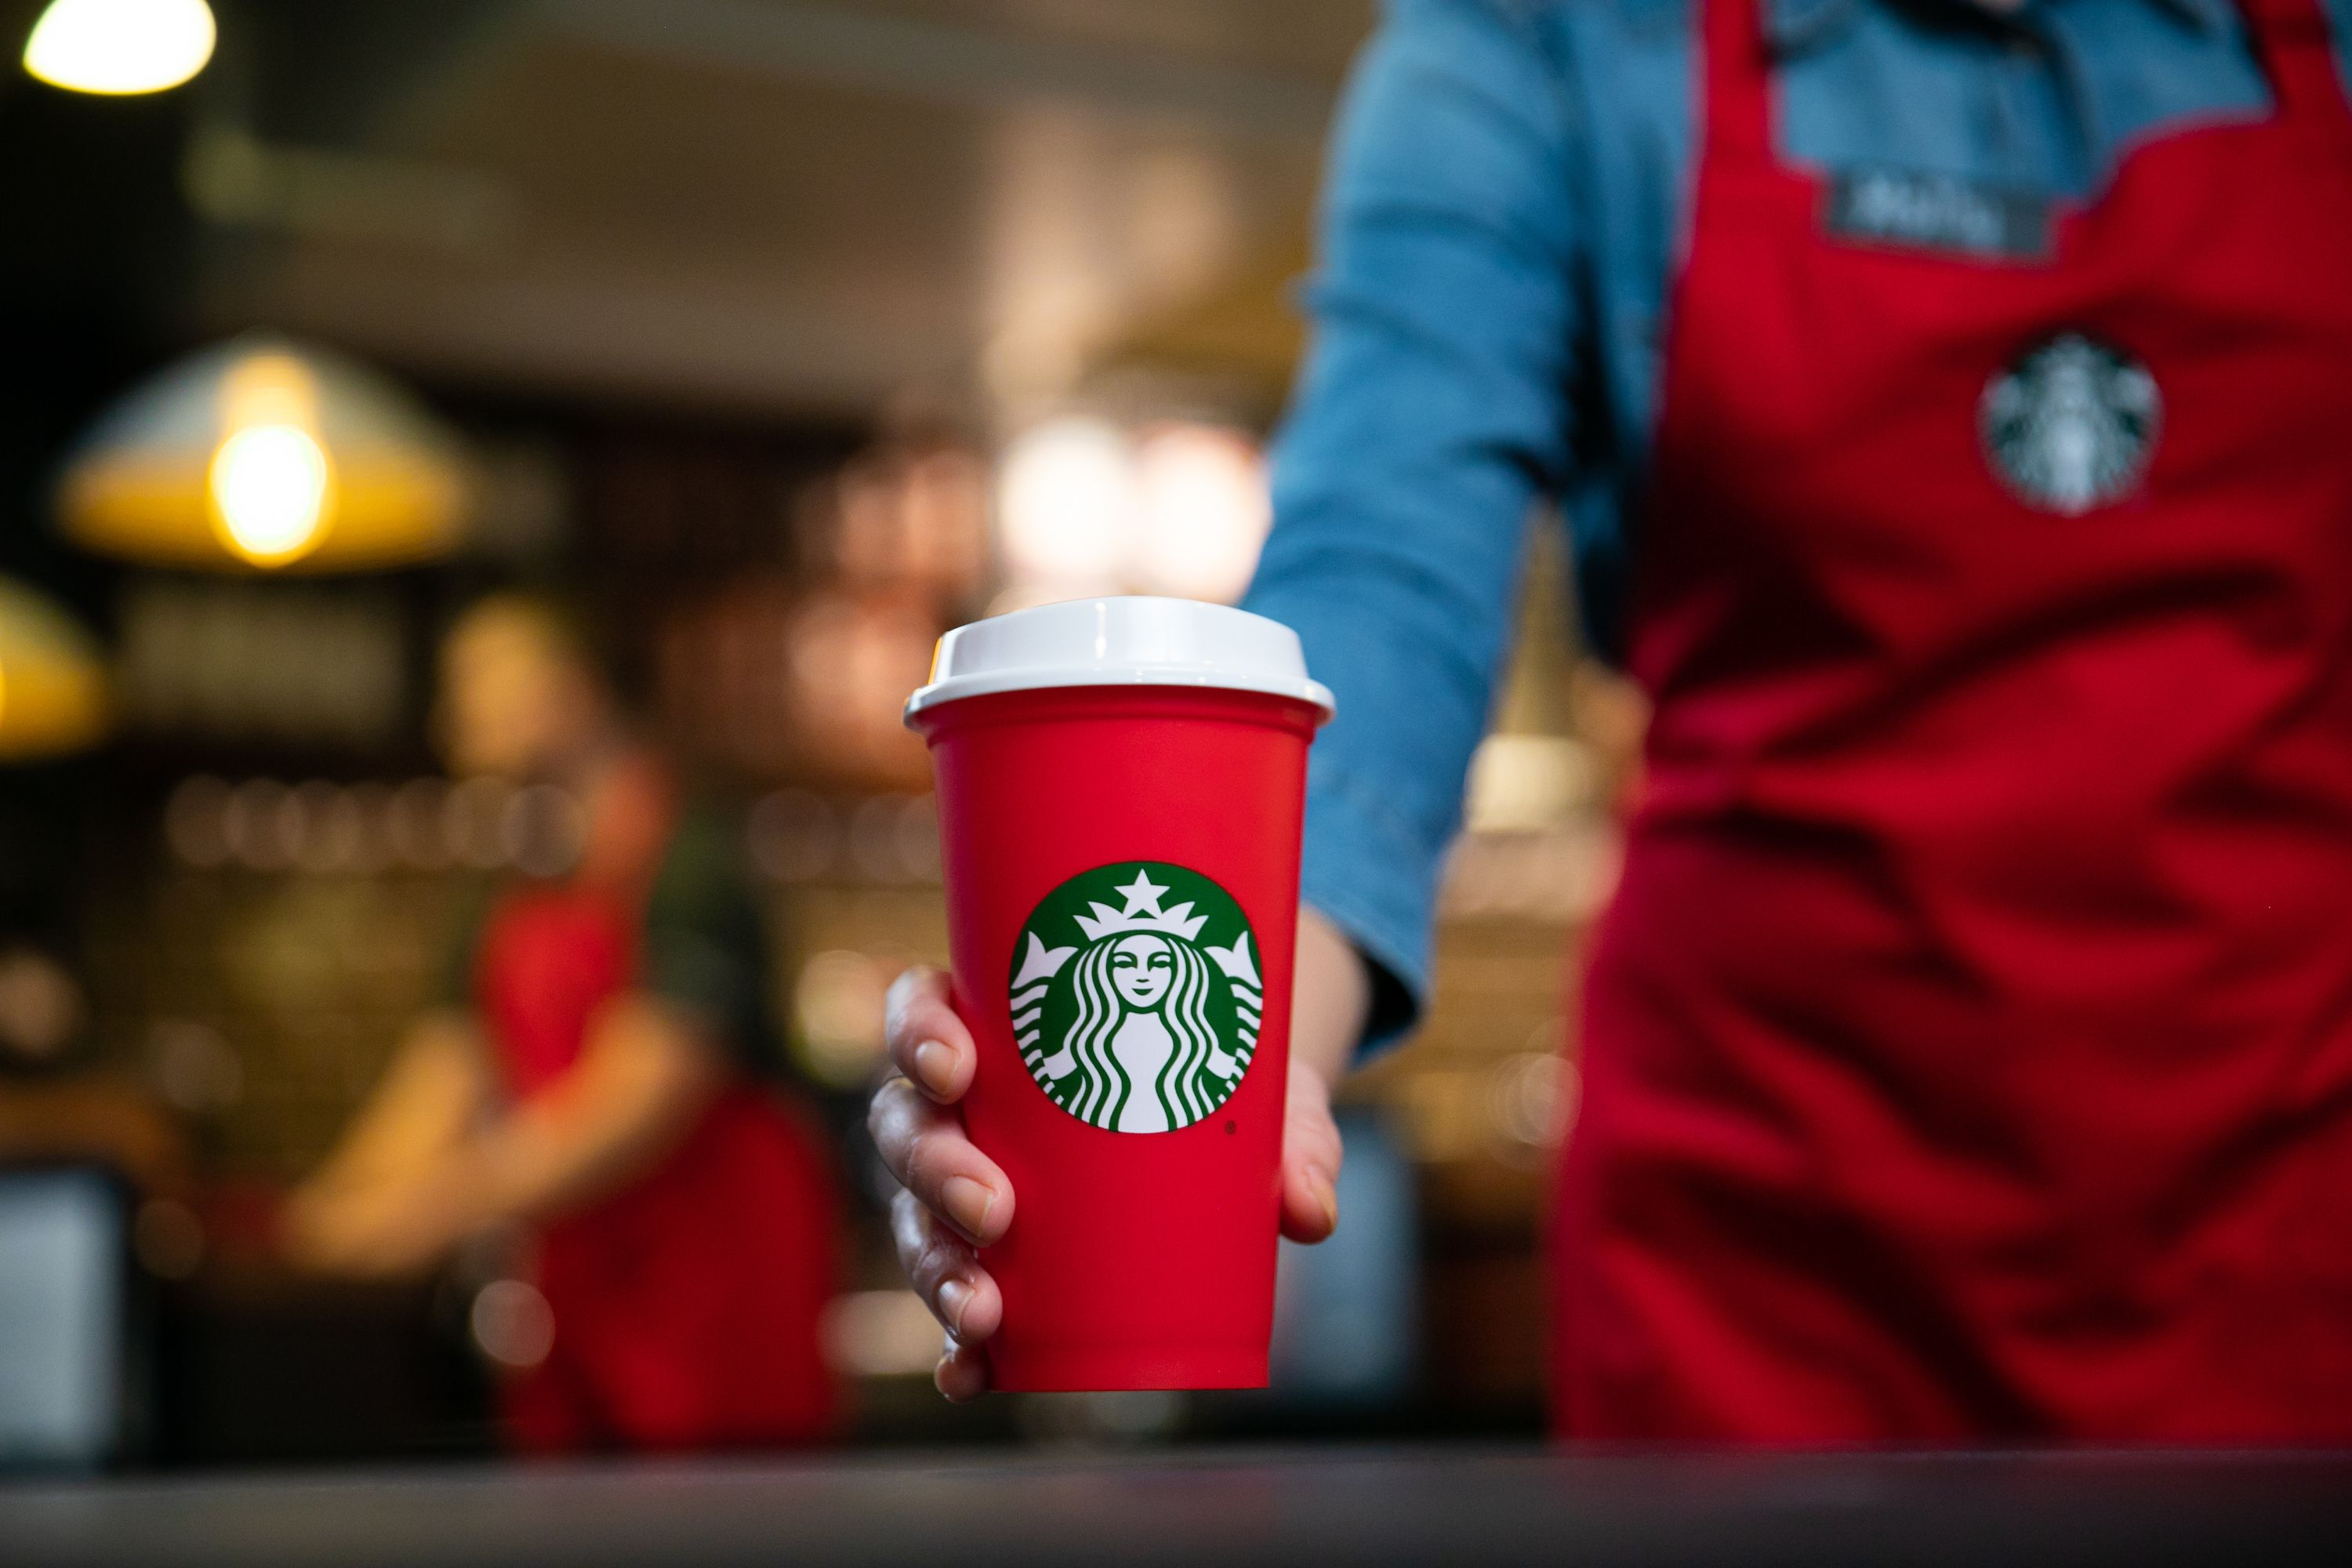 starbucks-holiday-2018-cups-4-jpg-154109